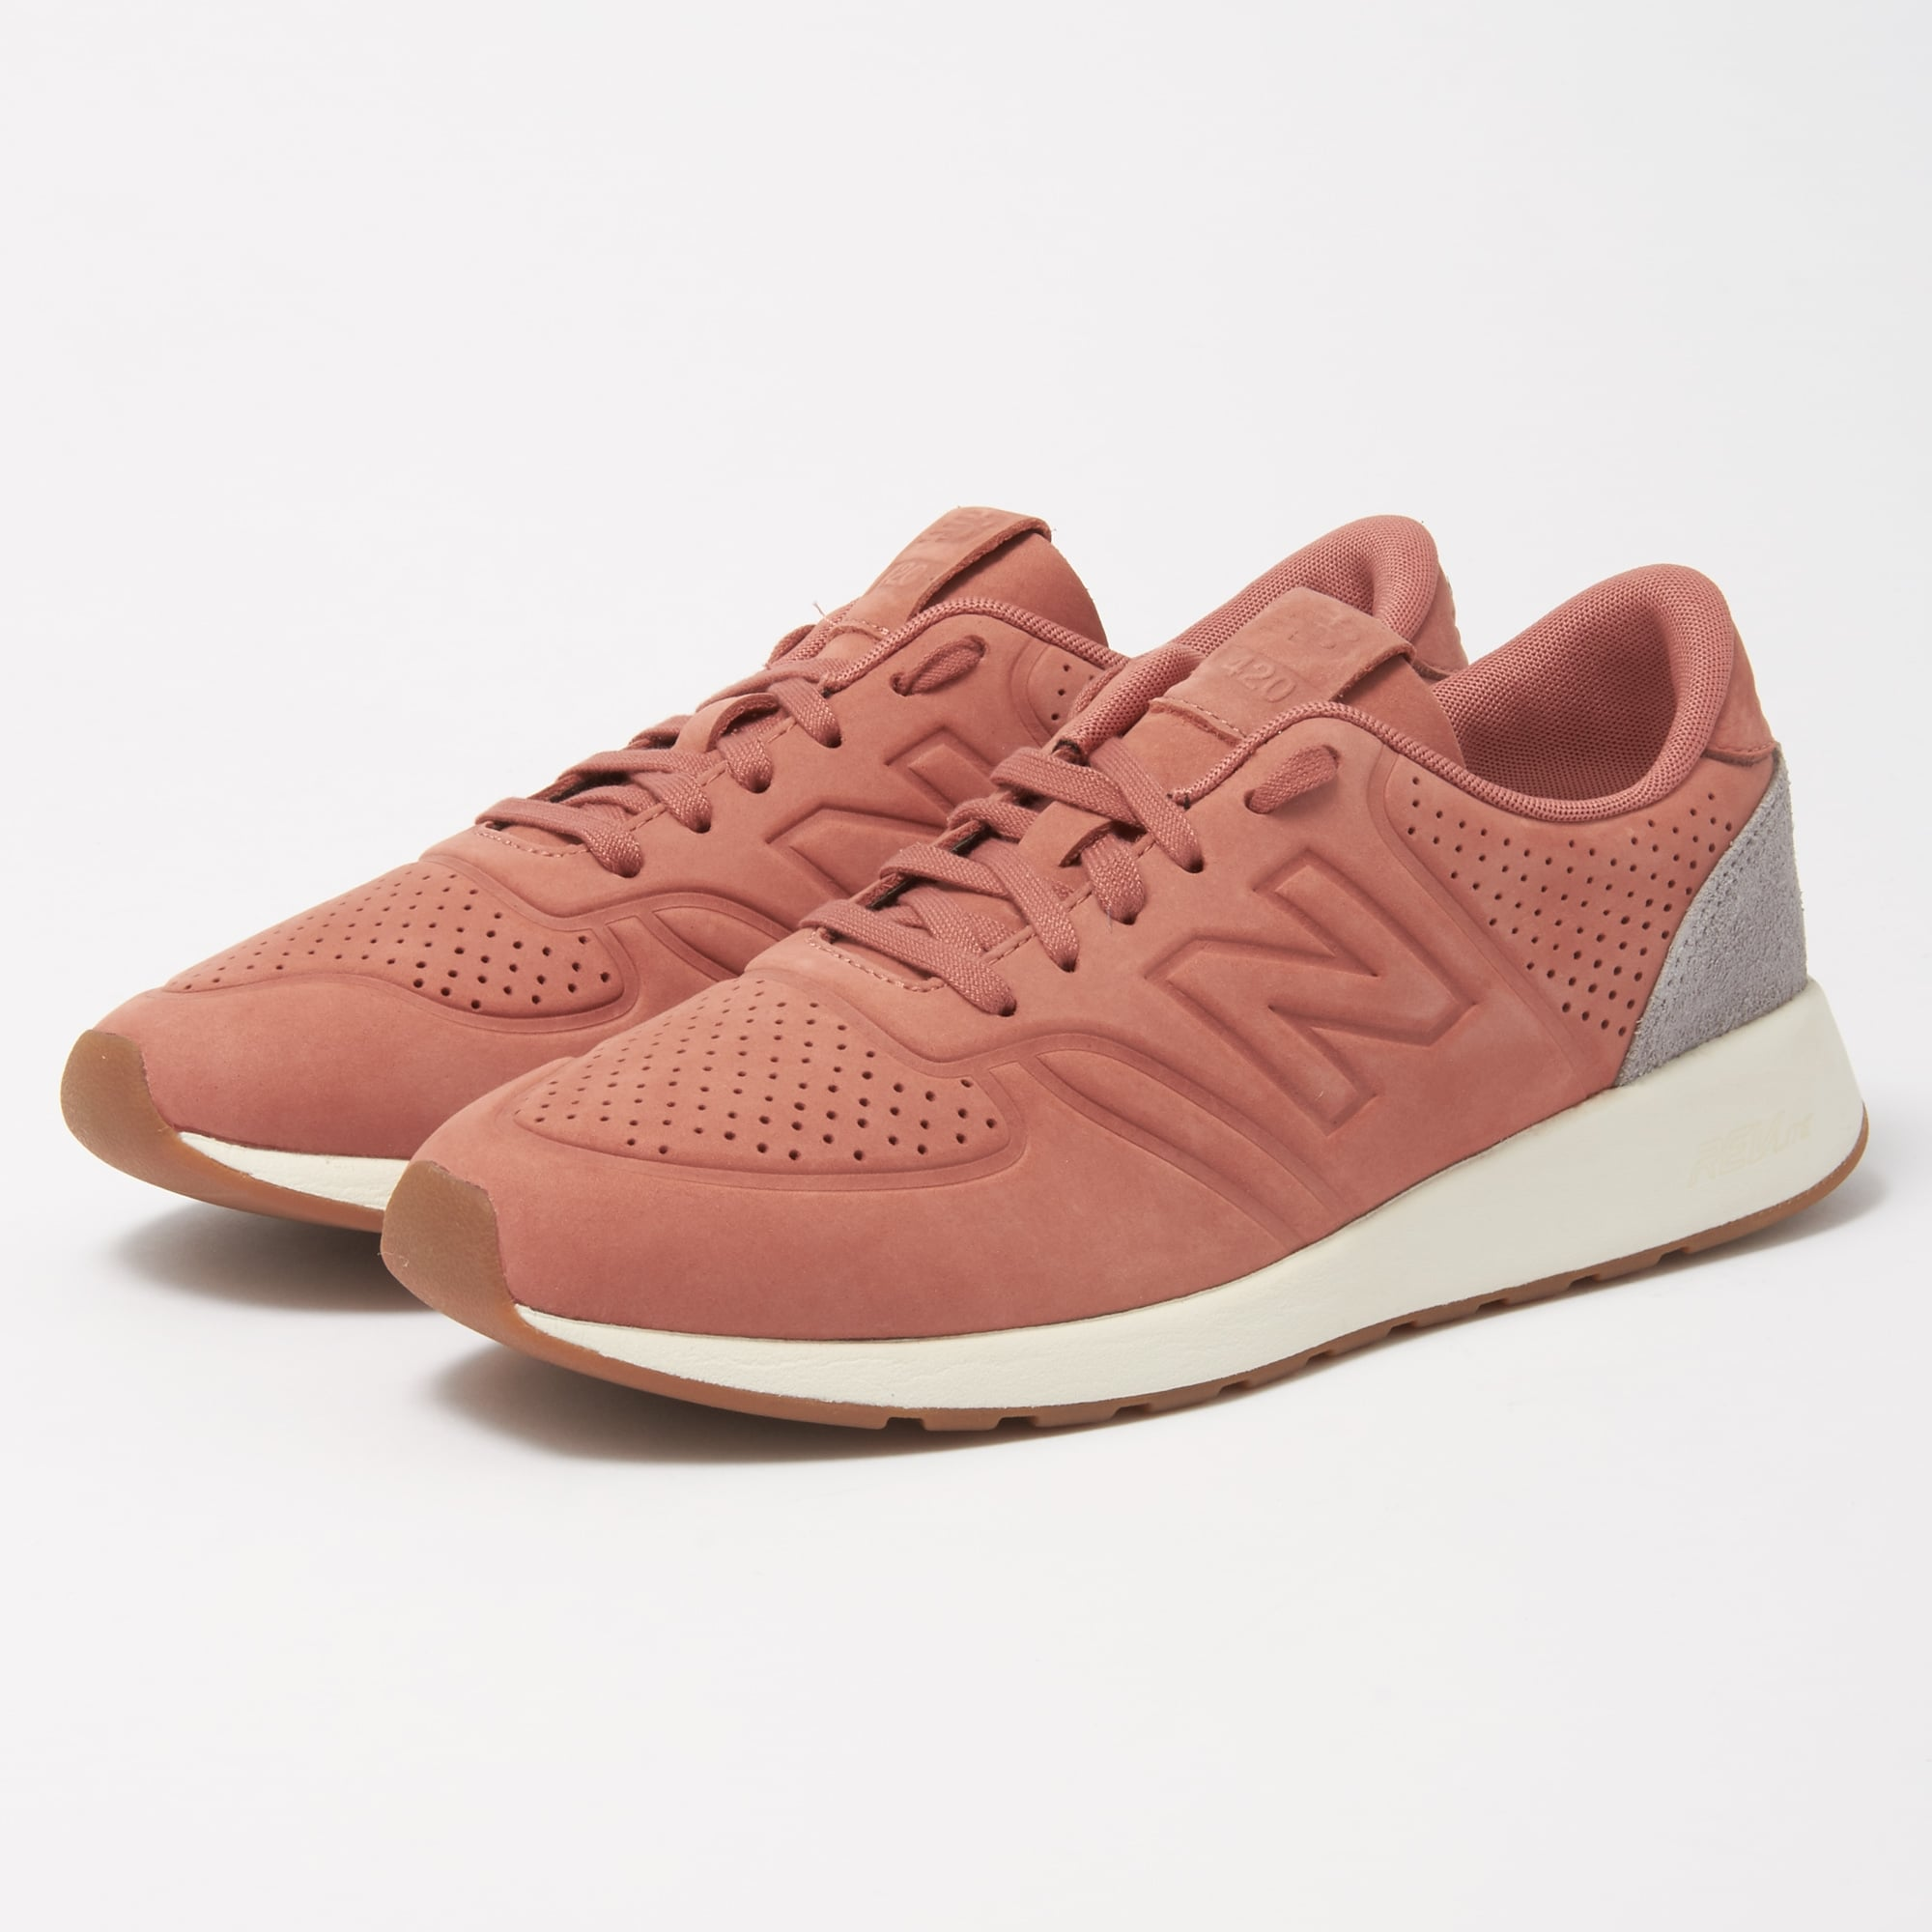 new balance women's 1500 v3 nz